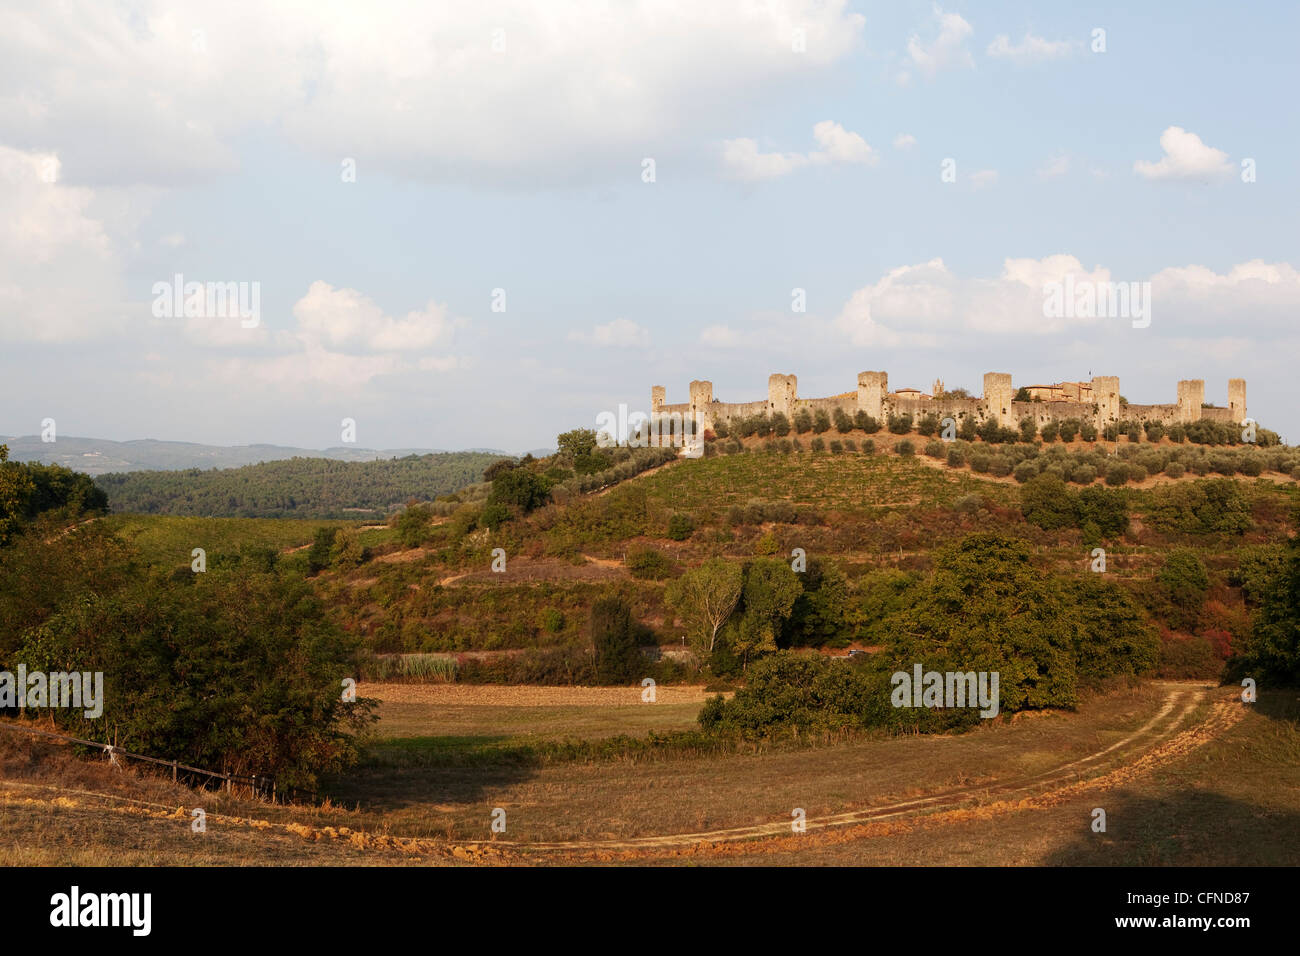 View of Monteriggioni with walls dating from the Middle Ages, Tuscany, Italy, Europe - Stock Image